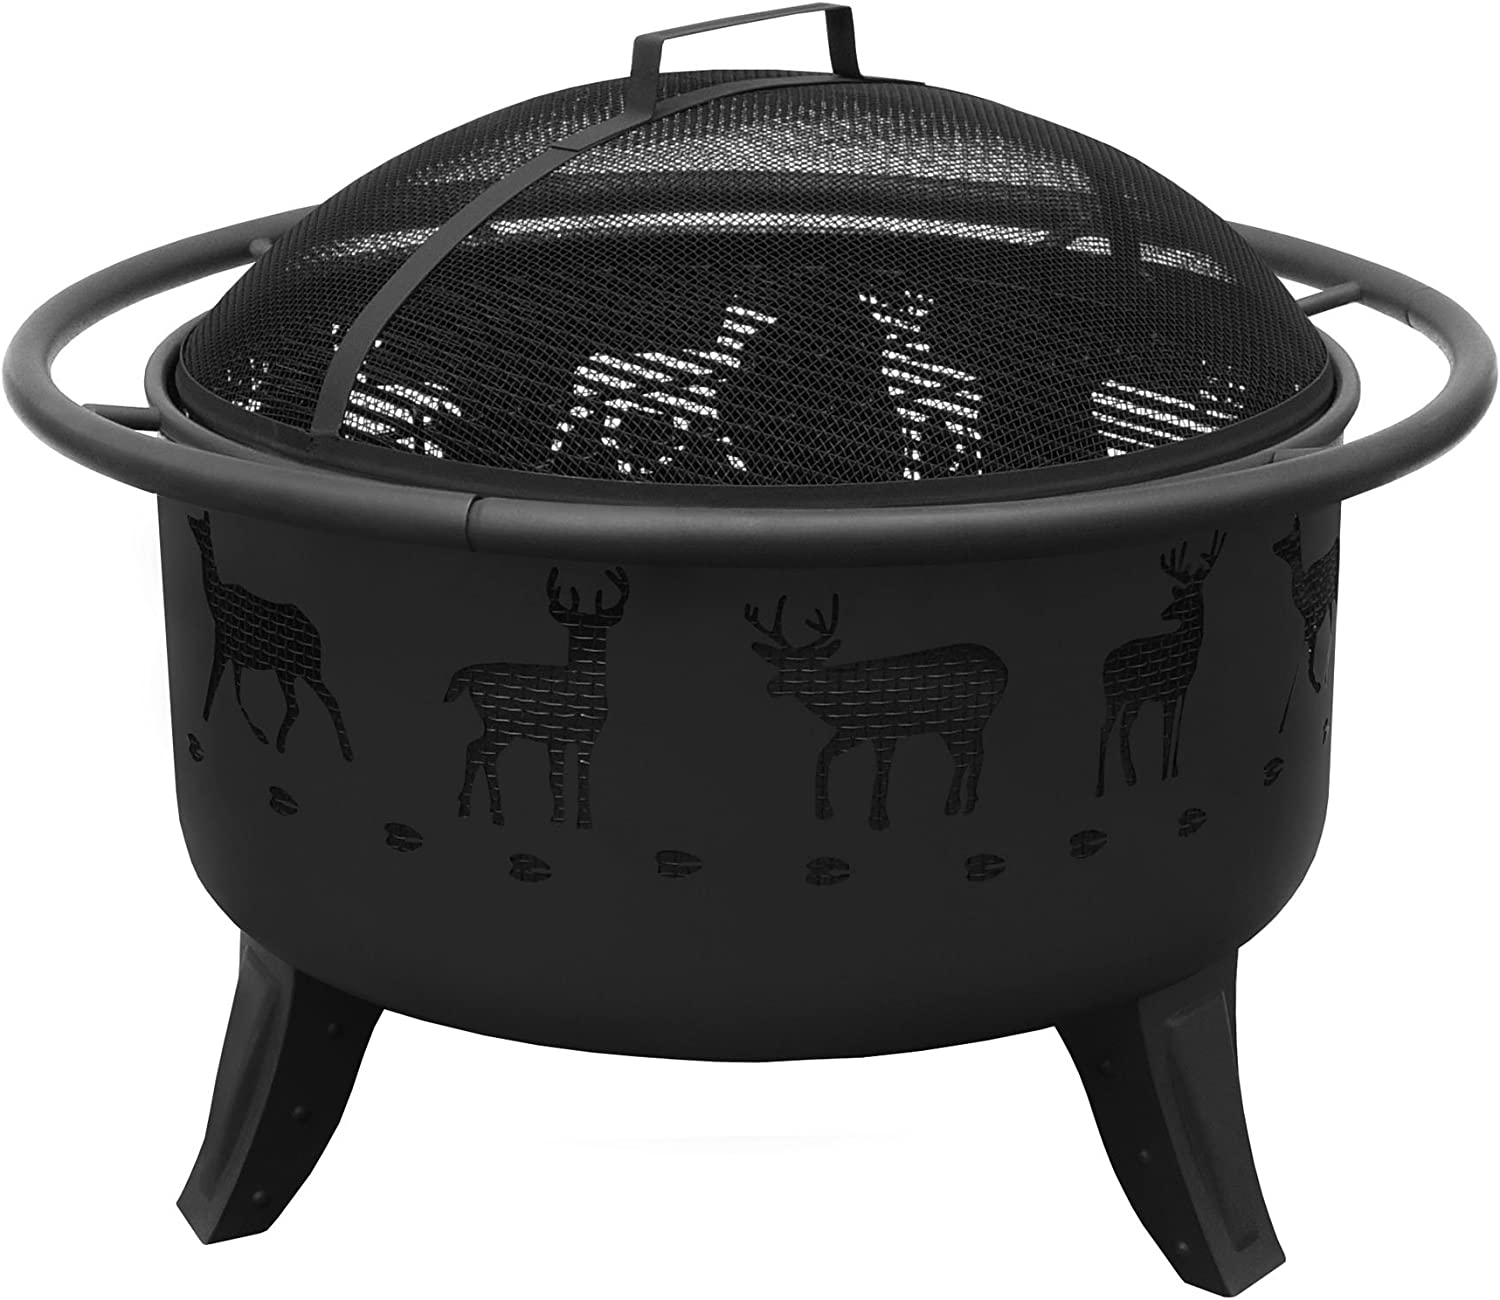 Landmann USA 23192 Patio Lights Deer Tracks Fire Pit, 24 x 12.5 inch, Black